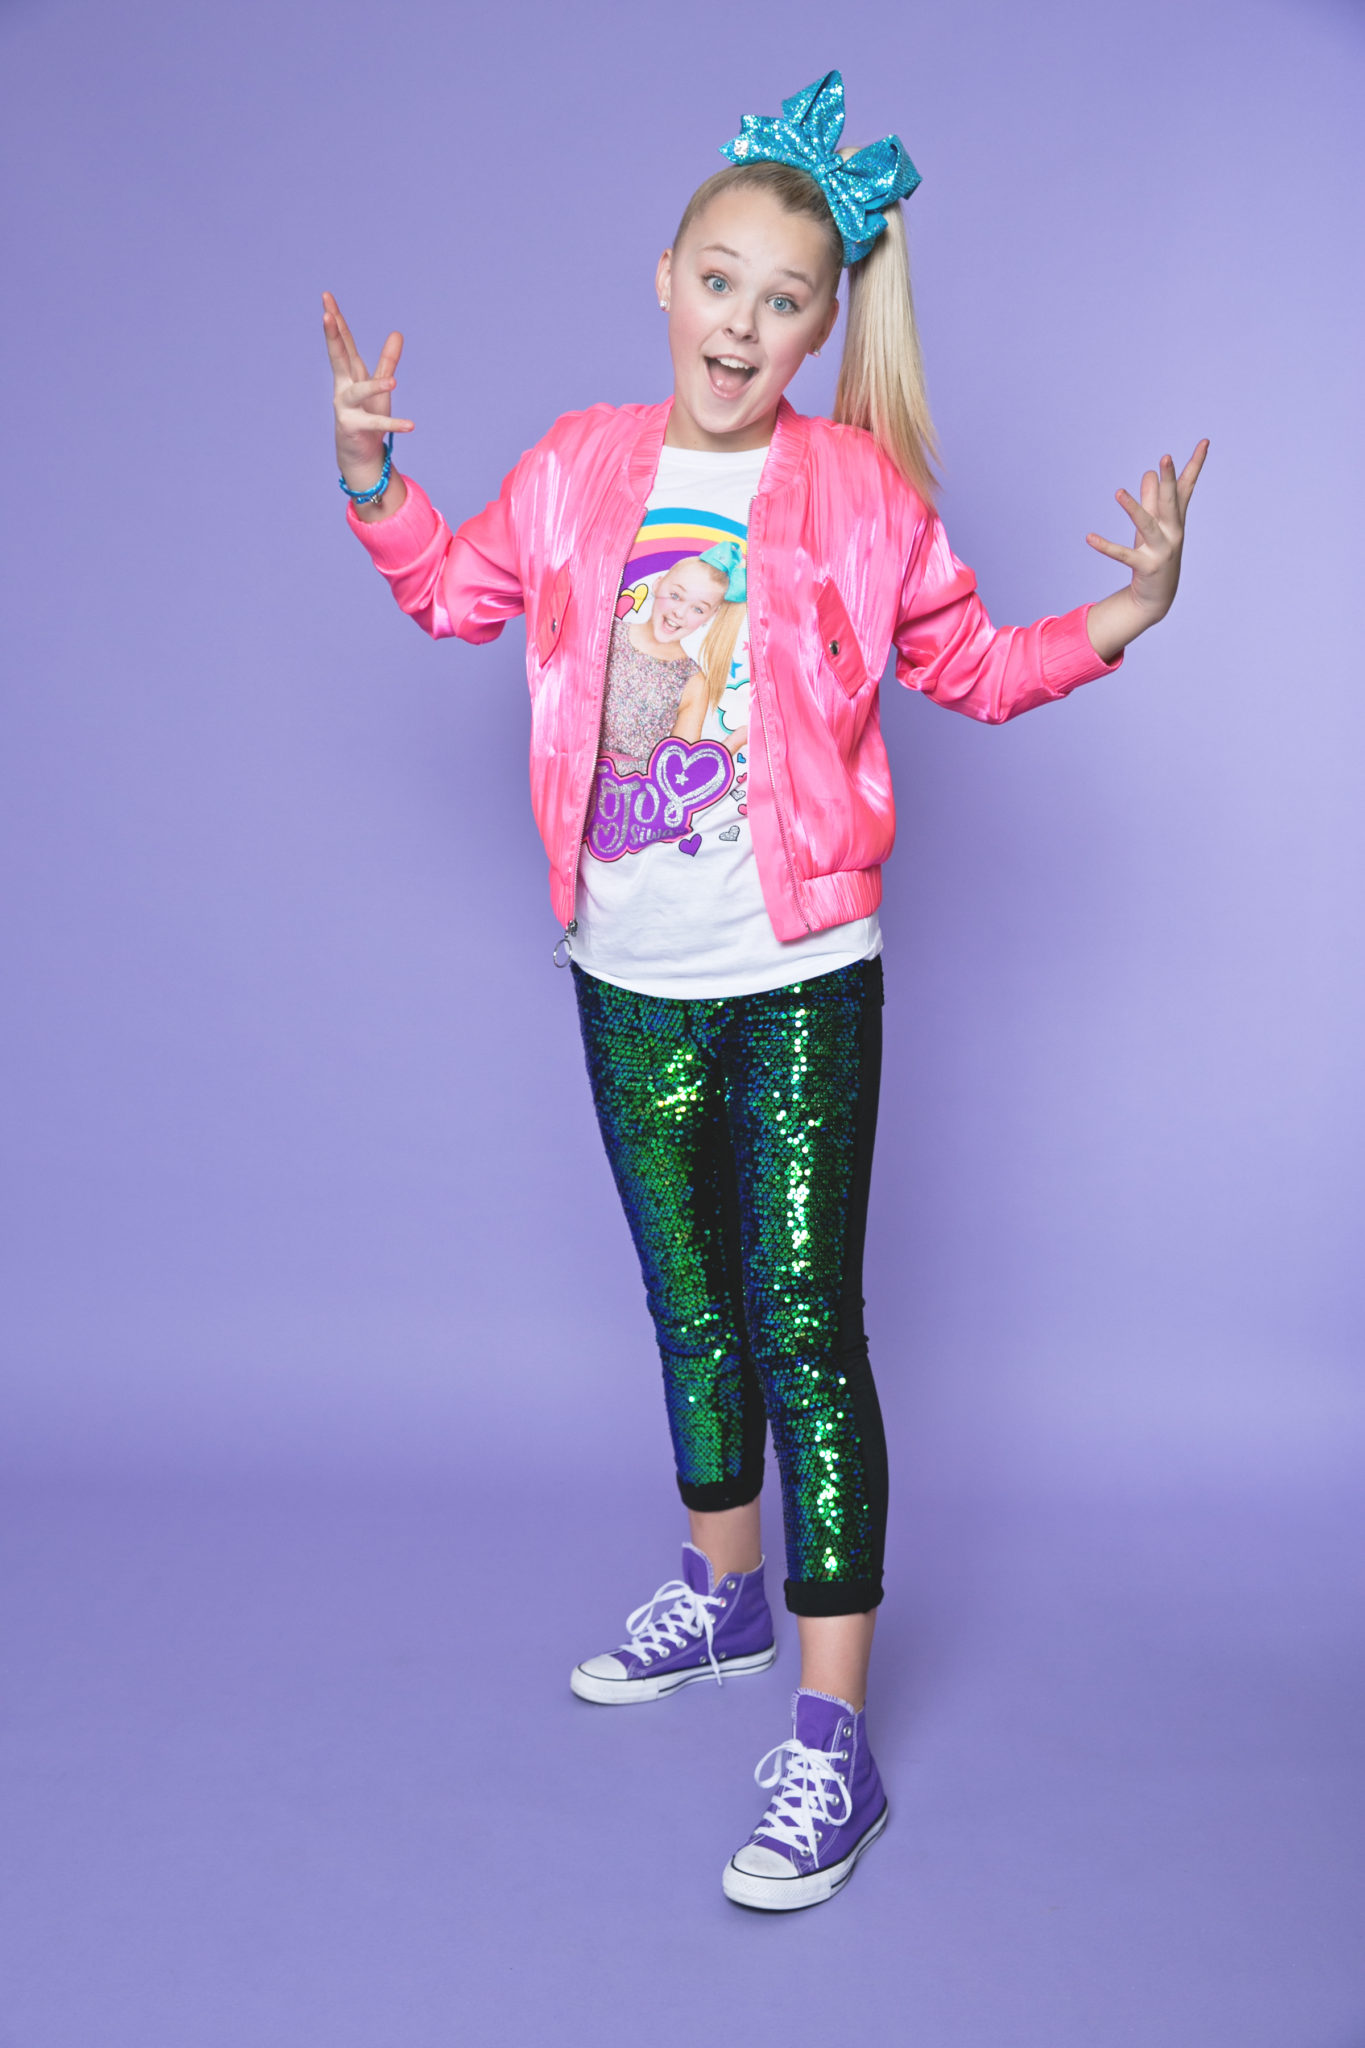 aa7c7b9ee7d7 It's JoJo Siwa | Official Website of JoJo Siwa